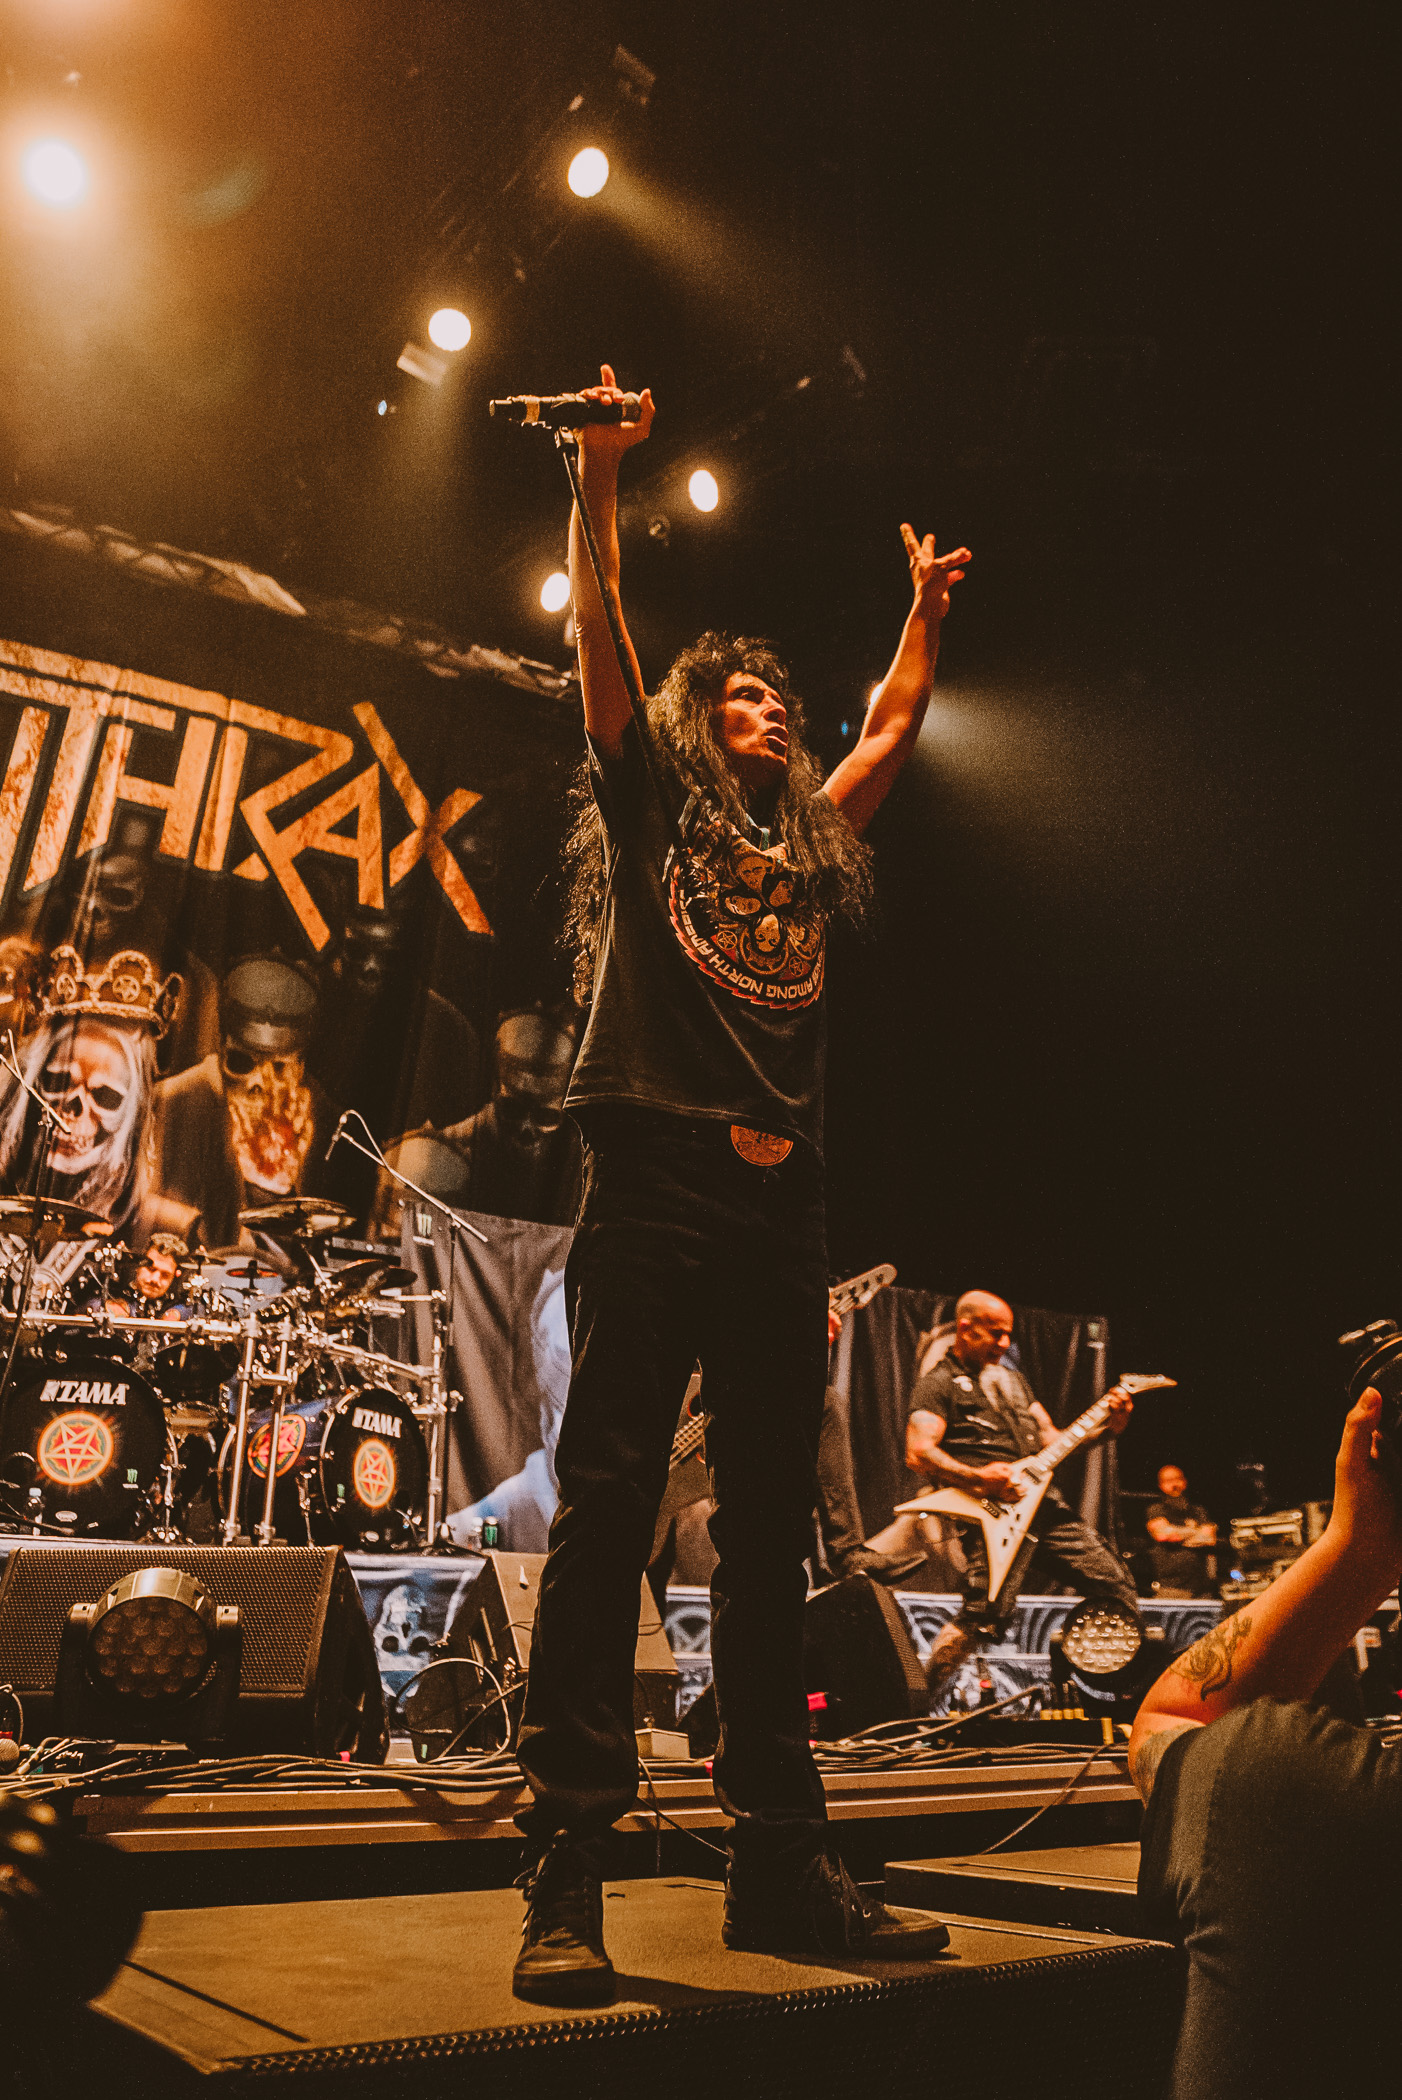 3_Anthrax-Pacific_Coliseum-Timothy_Nguyen-20180516-19.jpg